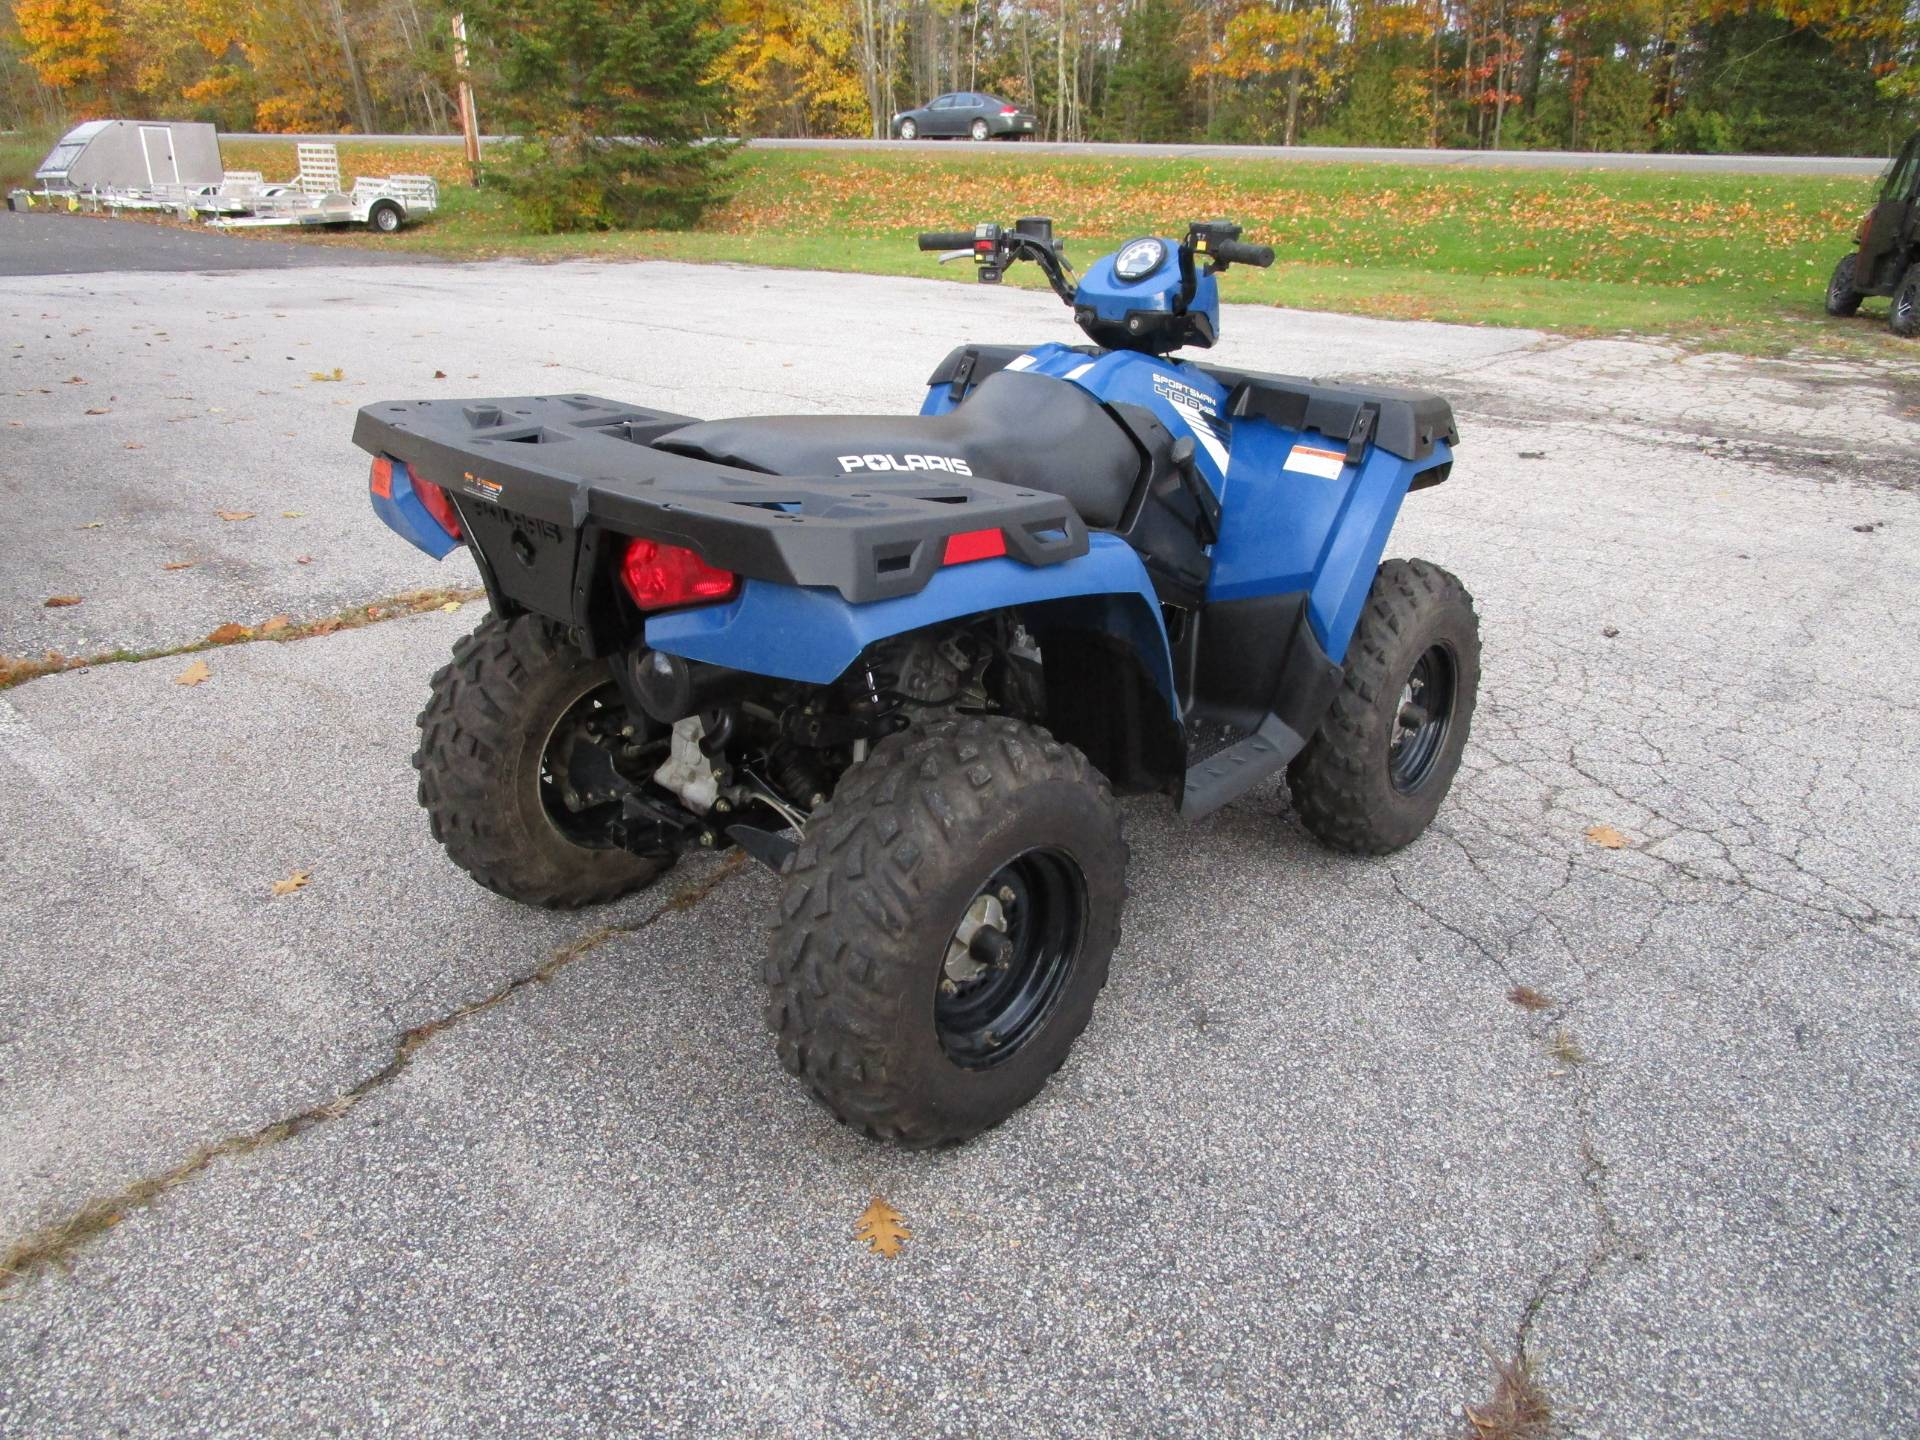 2014 Polaris Sportsman® 400 H.O. in Newport, Maine - Photo 3